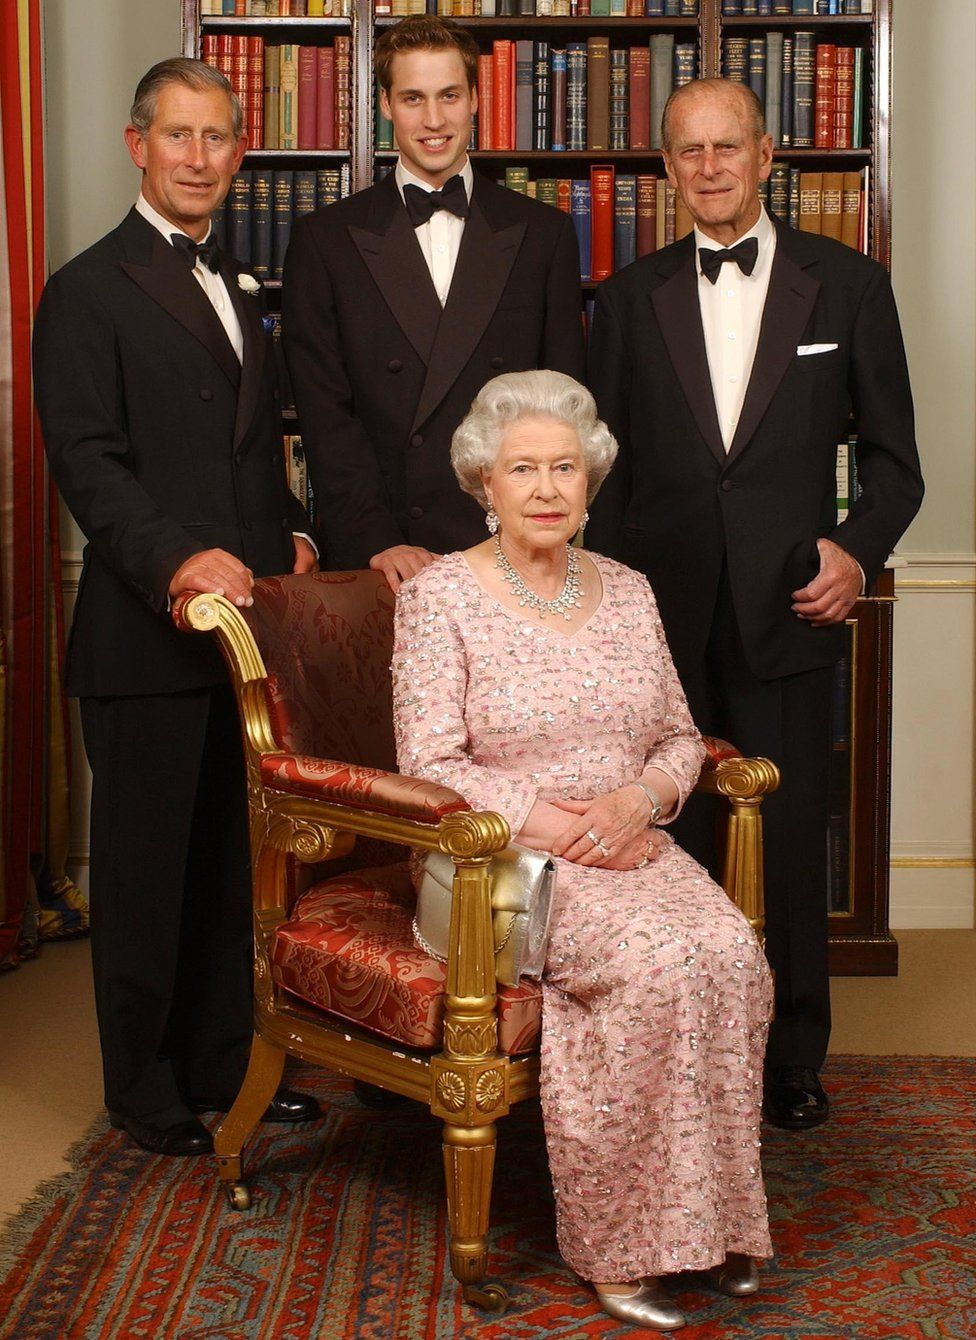 Three generations of the British Royal family - Queen Elizabeth II and her husband, the Duke of Edinburgh, their oldest son, the Prince of Wales, and his oldest son, Prince William, at Clarence House in London